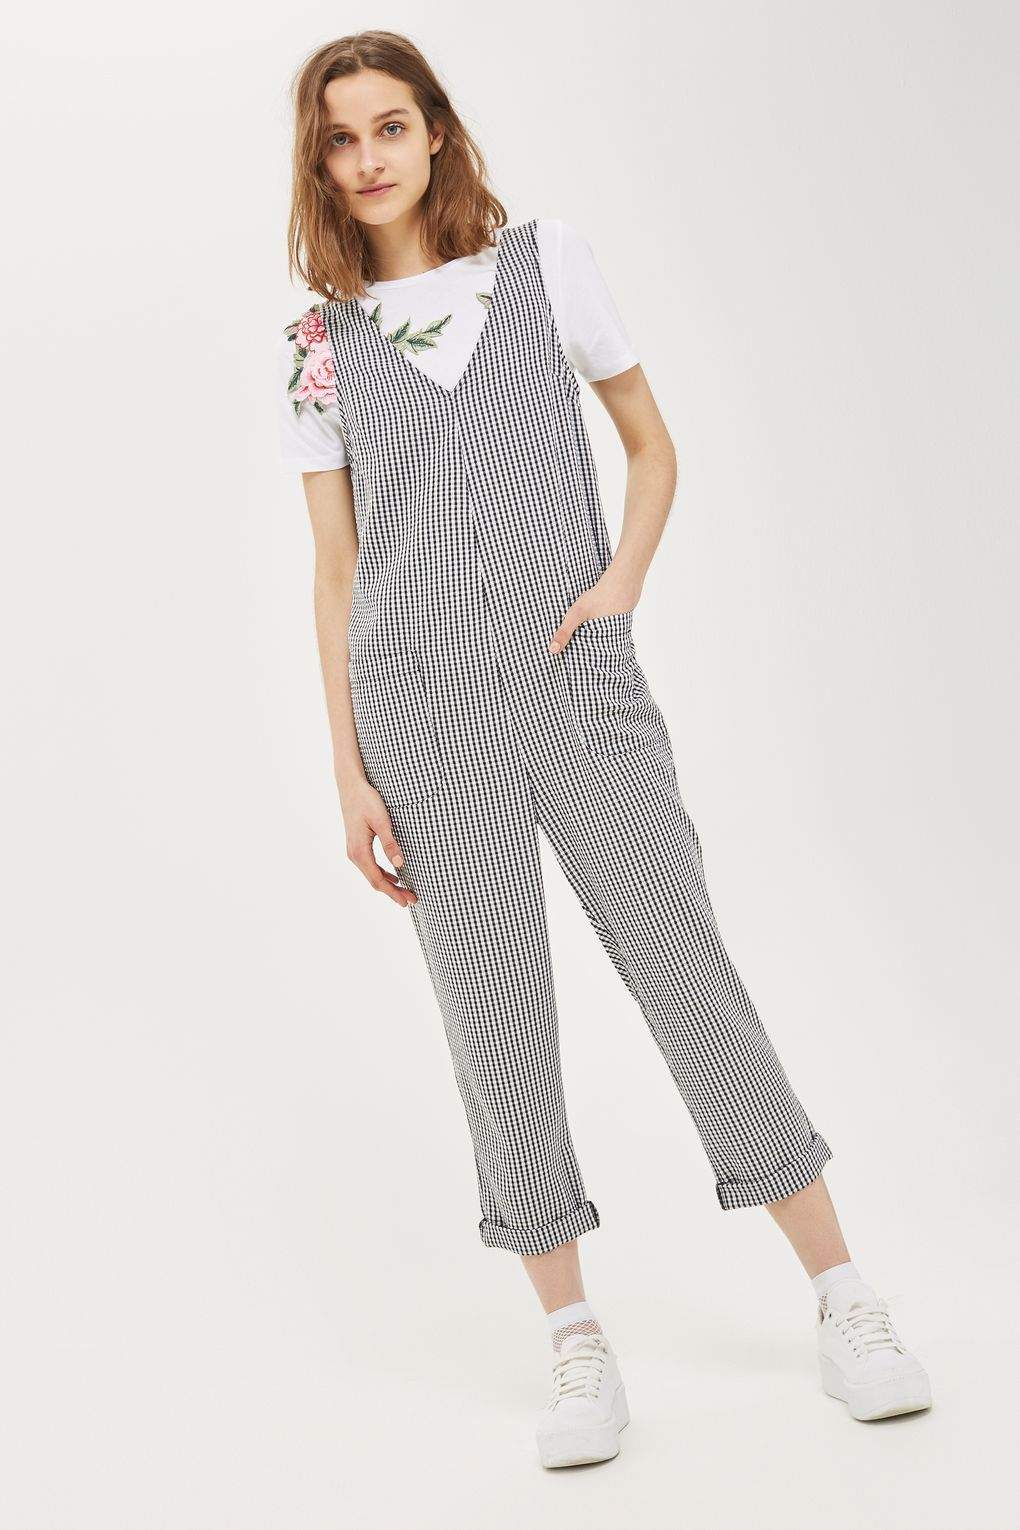 40484f9720b0 Carousel Image 2 Gingham Jumpsuit